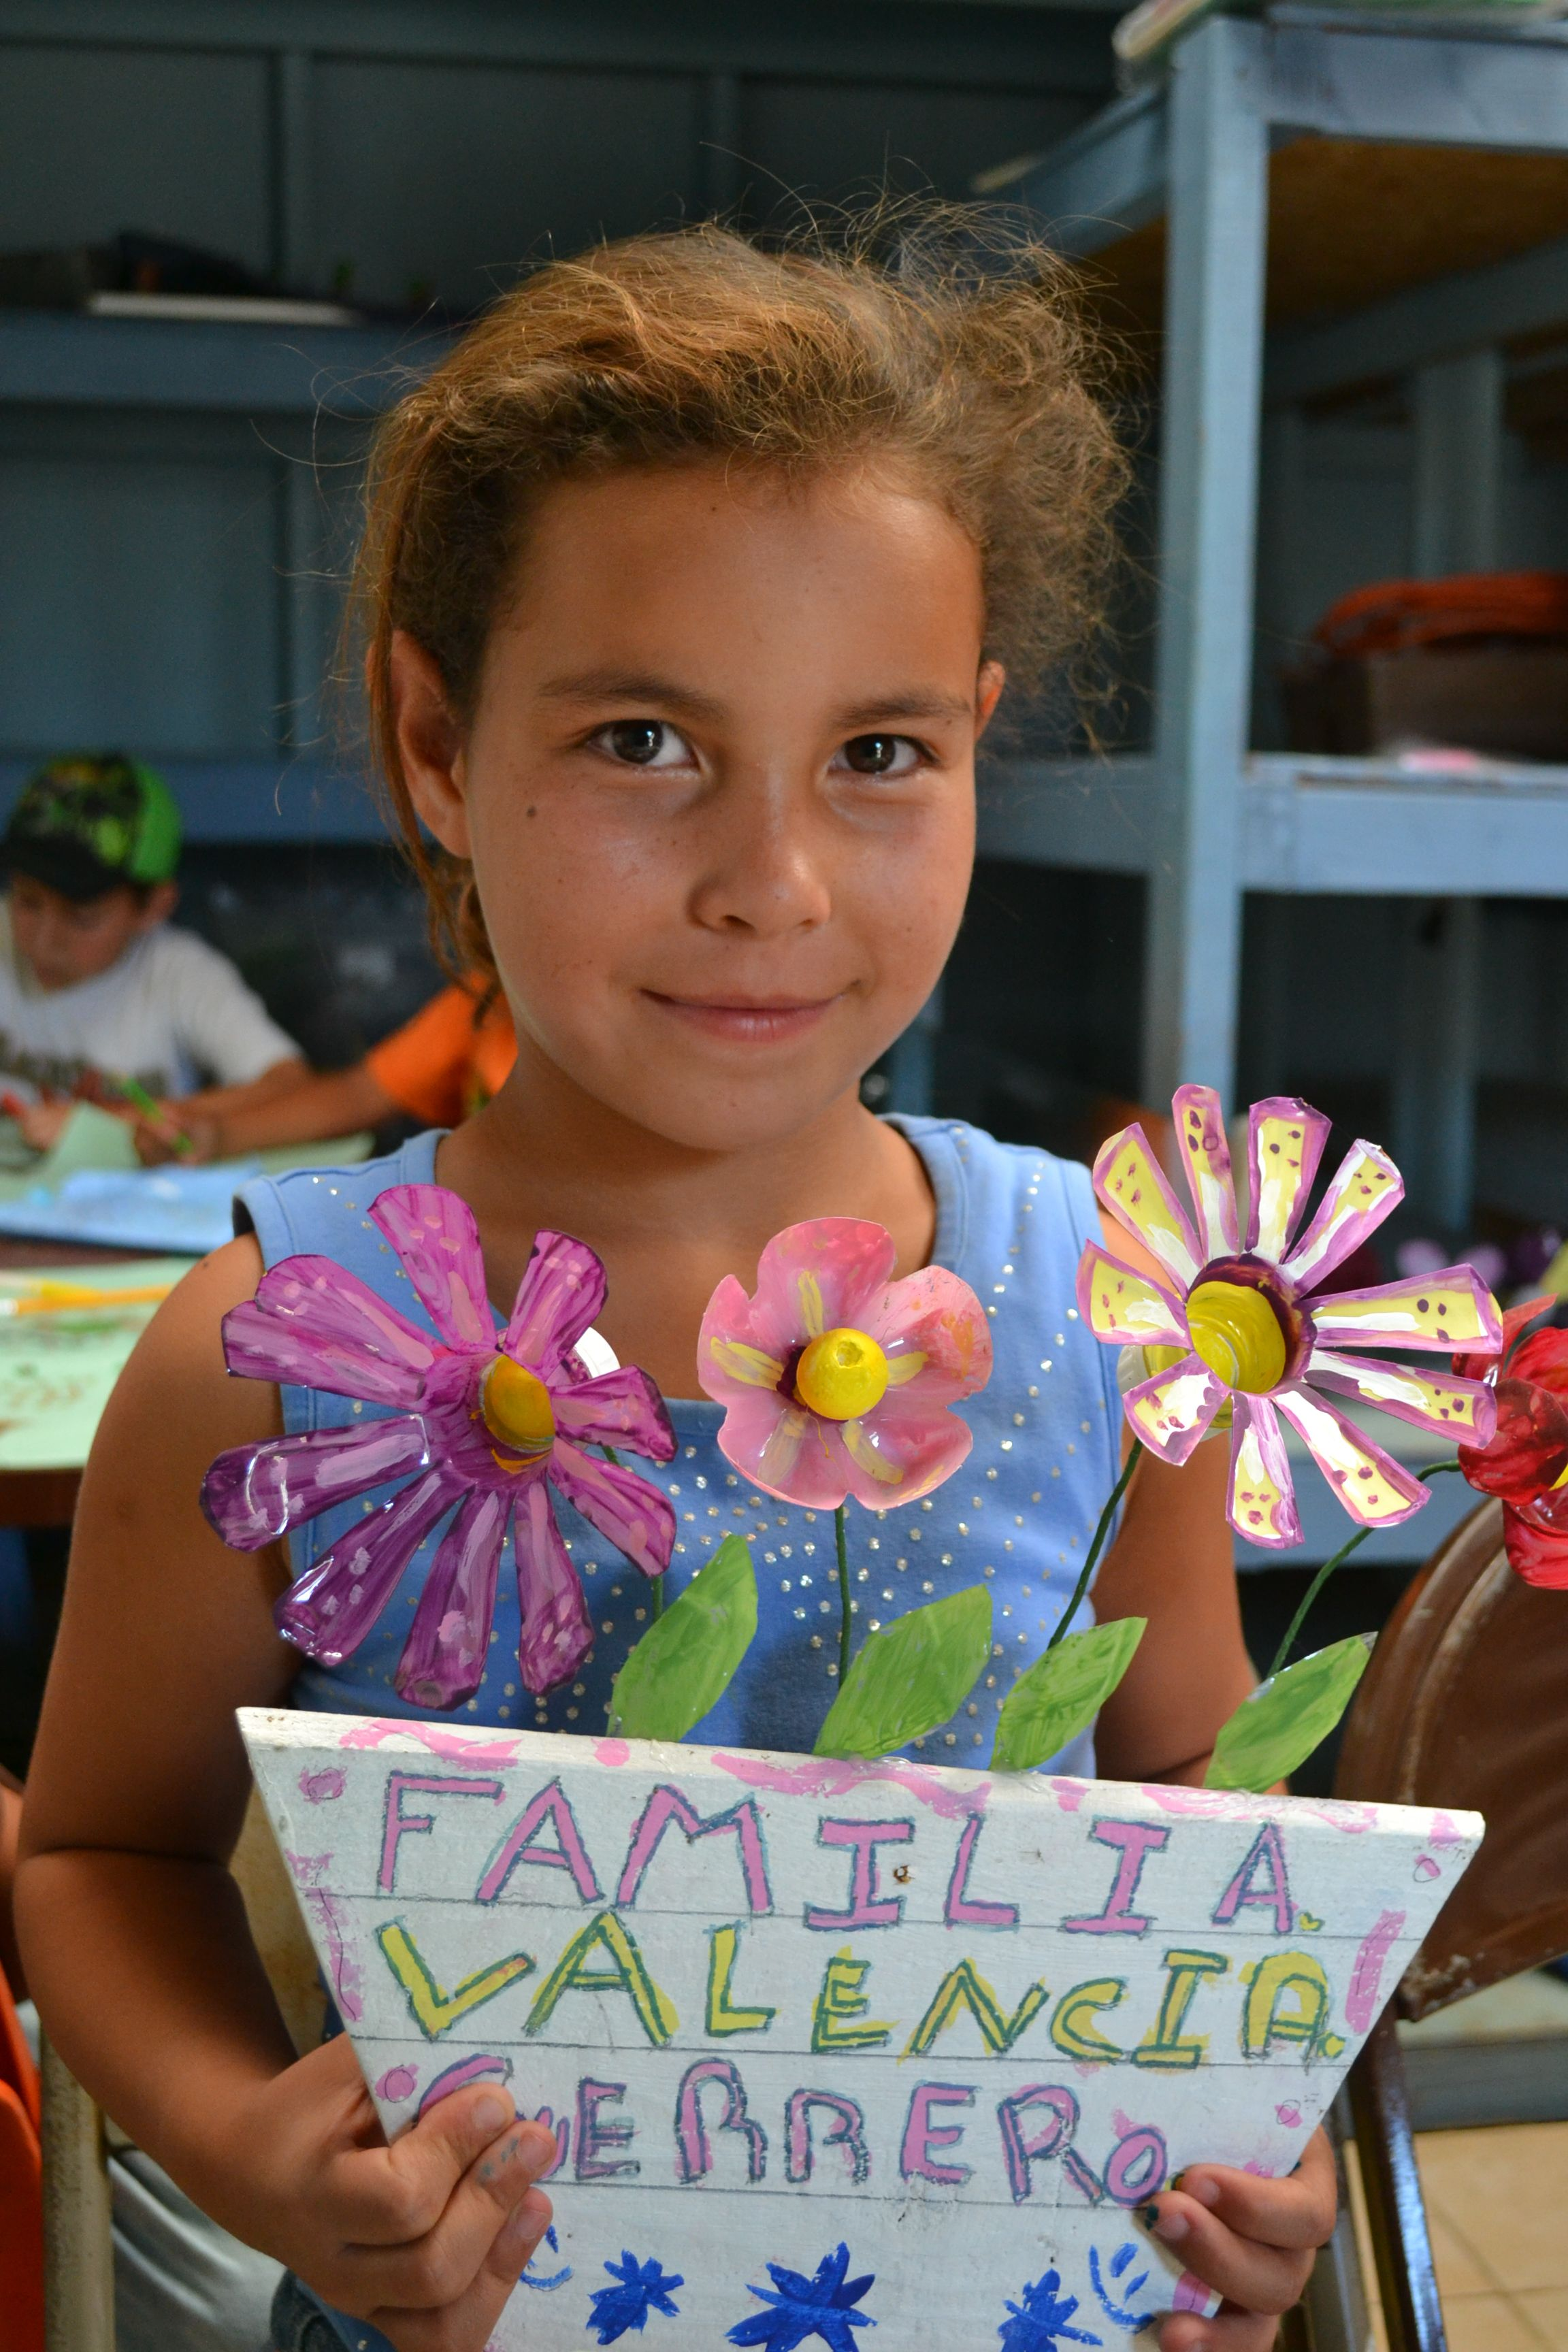 Very cute flowers made from recyclable materials! Corazon teaches our young participants to think green. #nonprofit #charity #corazon